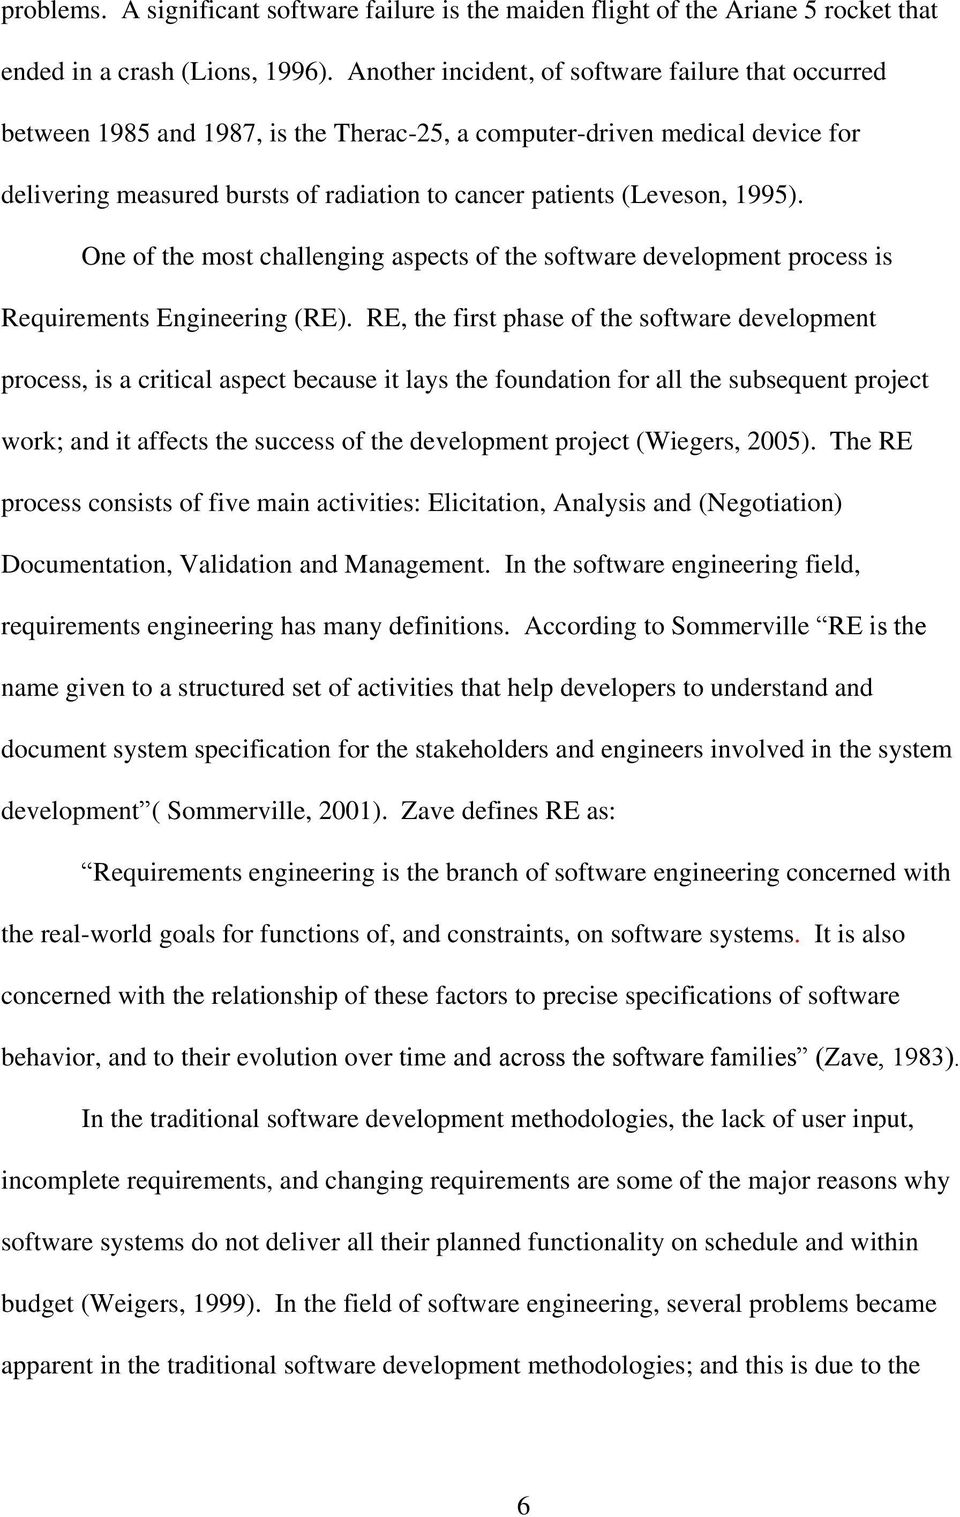 1995). One of the most challenging aspects of the software development process is Requirements Engineering (RE).